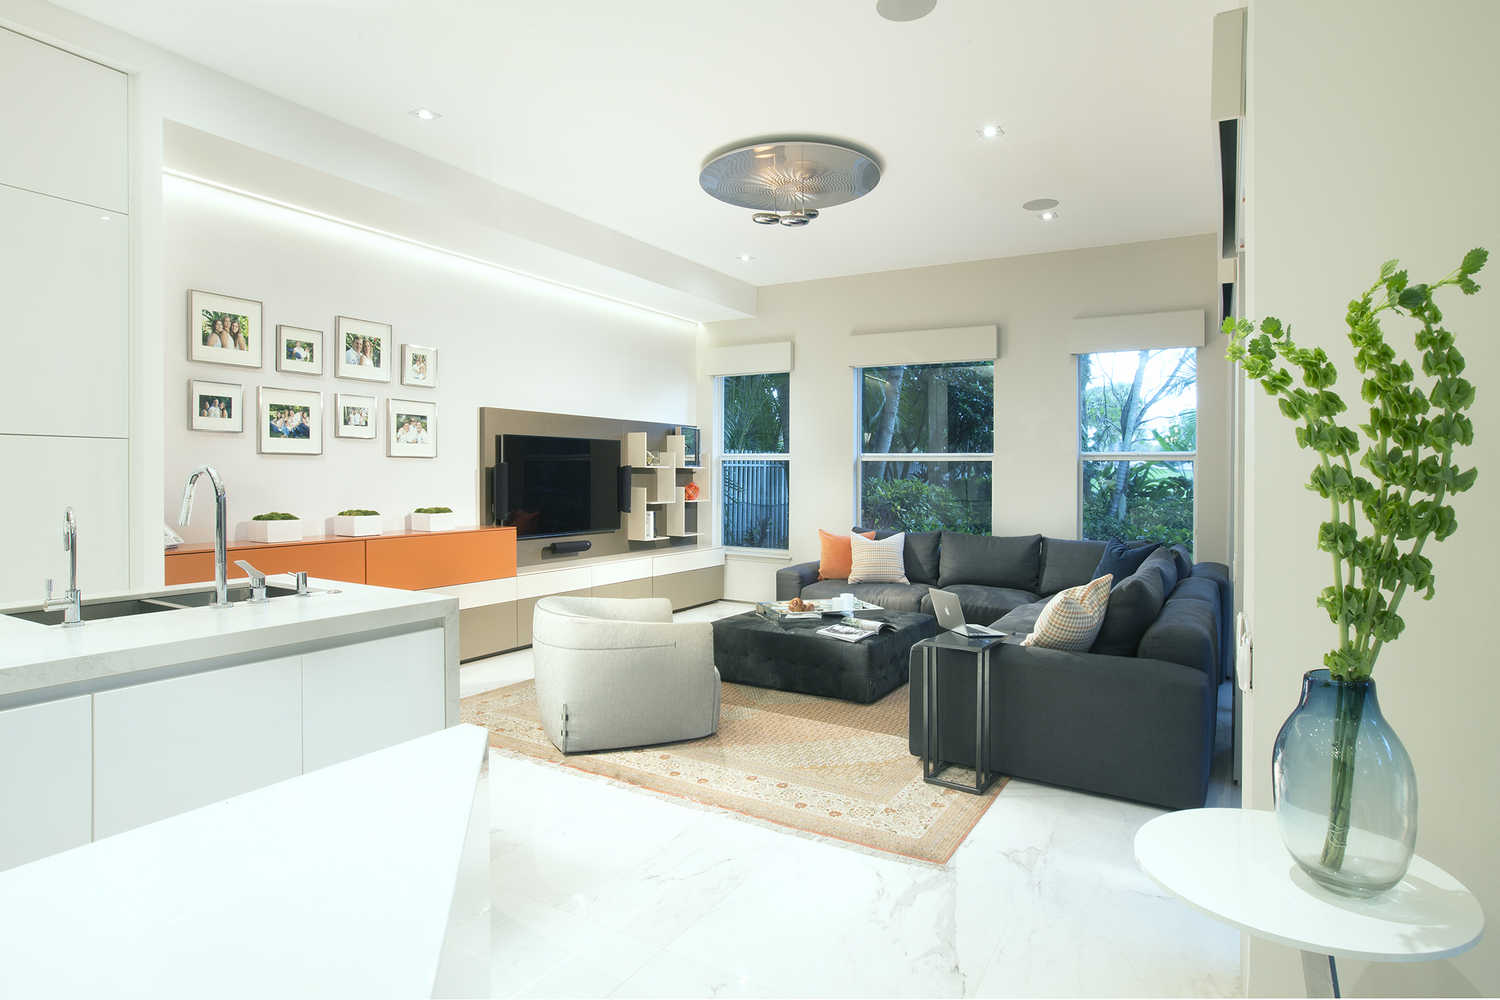 Family Rooms - Residential Interior Design From DKOR Interiors